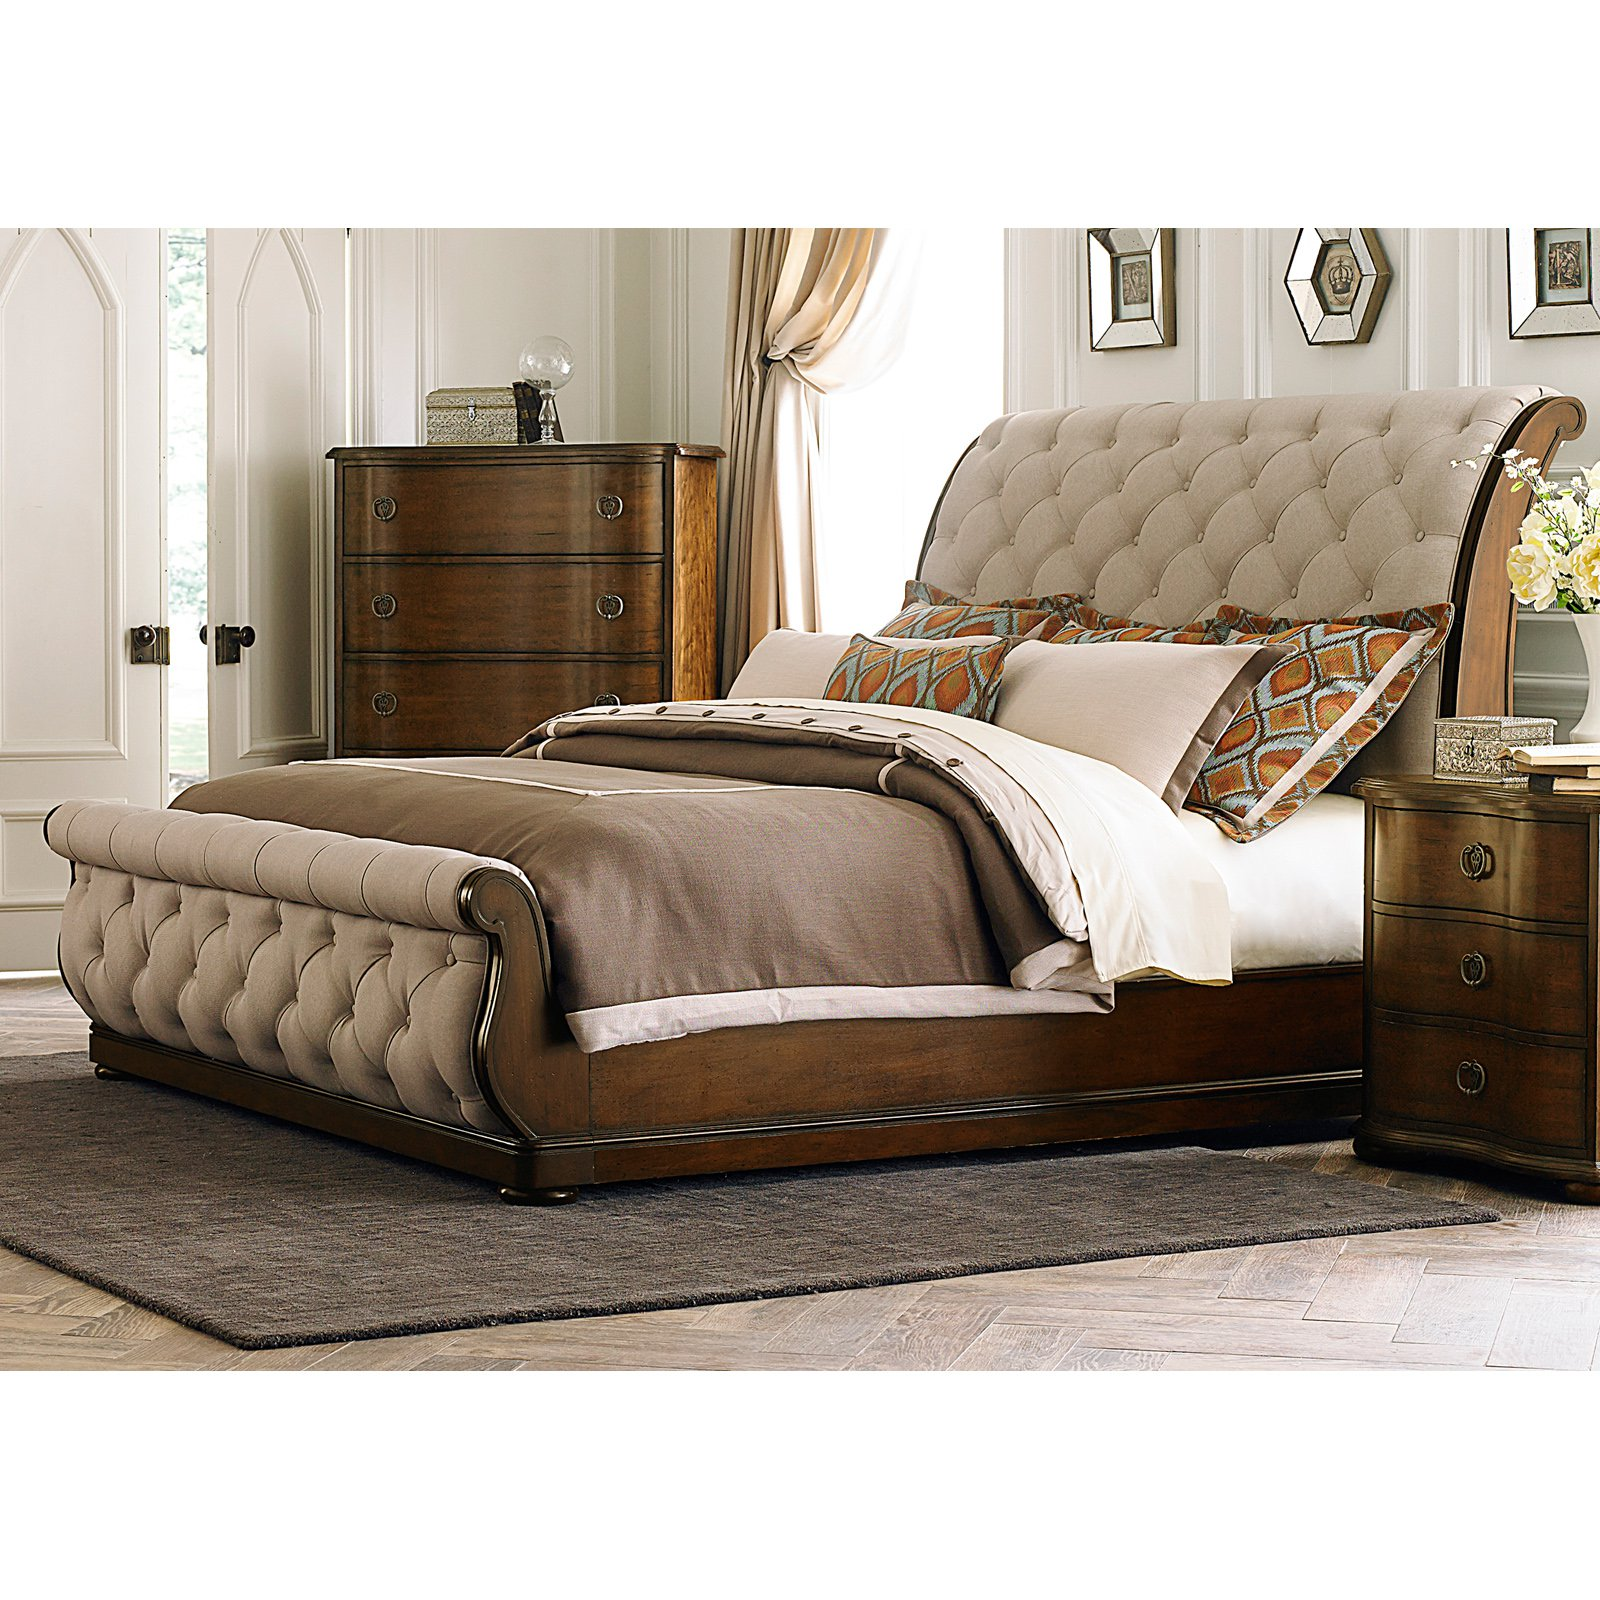 Liberty Furniture Cotswold Upholstered Sleigh Bed